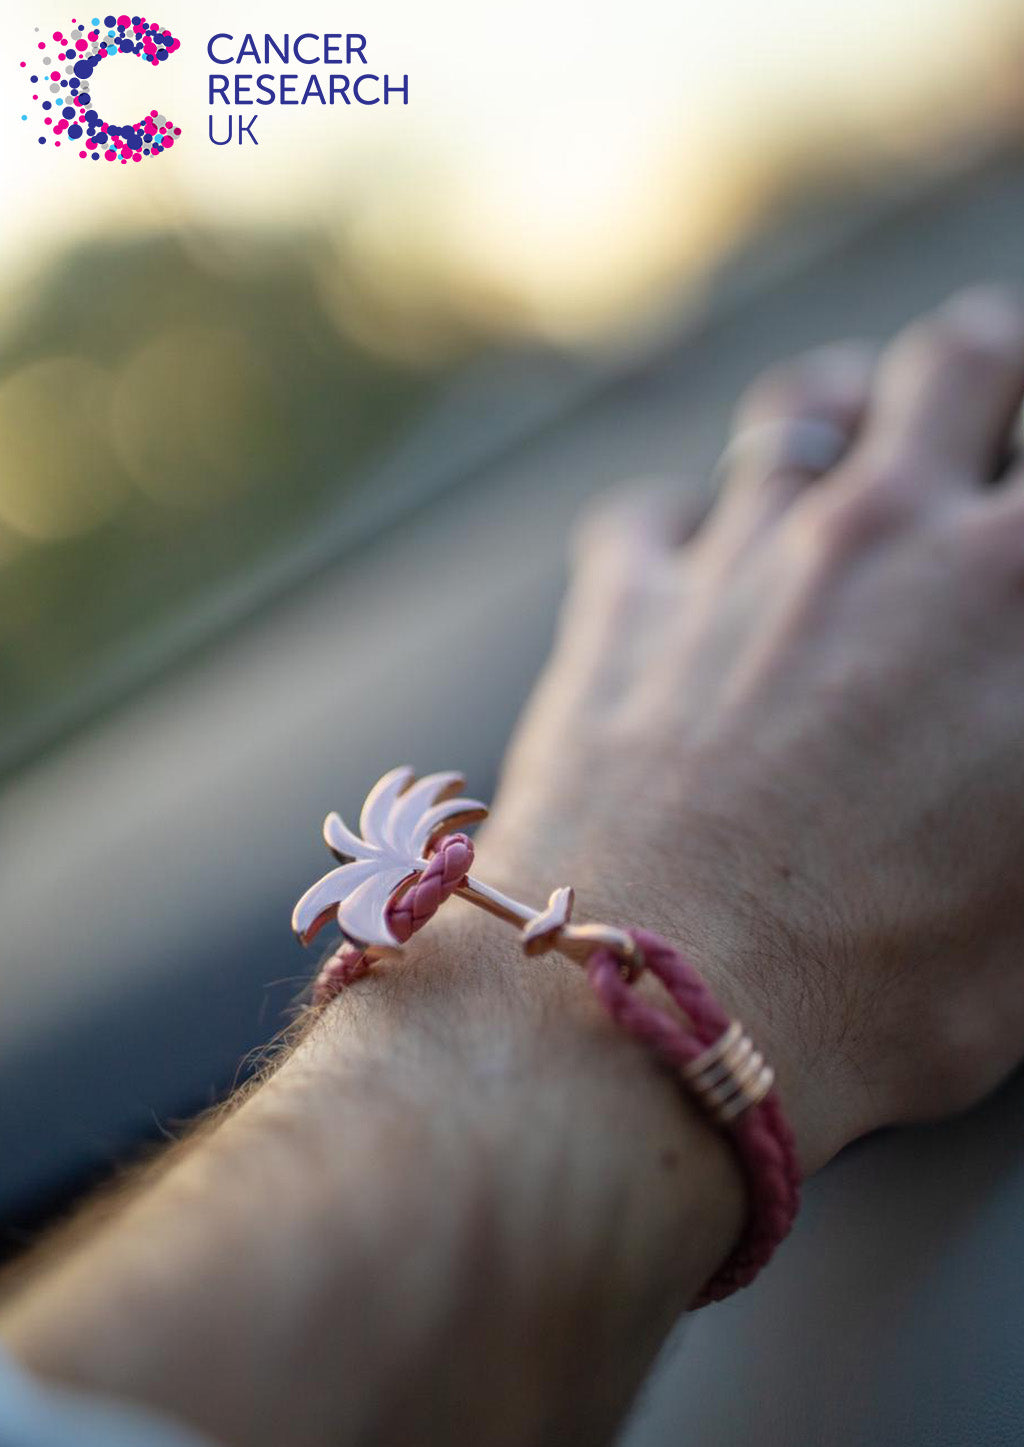 Flamingo Rose - Palm anchor bracelet with pink leather. 20% of sales go to cancer research.